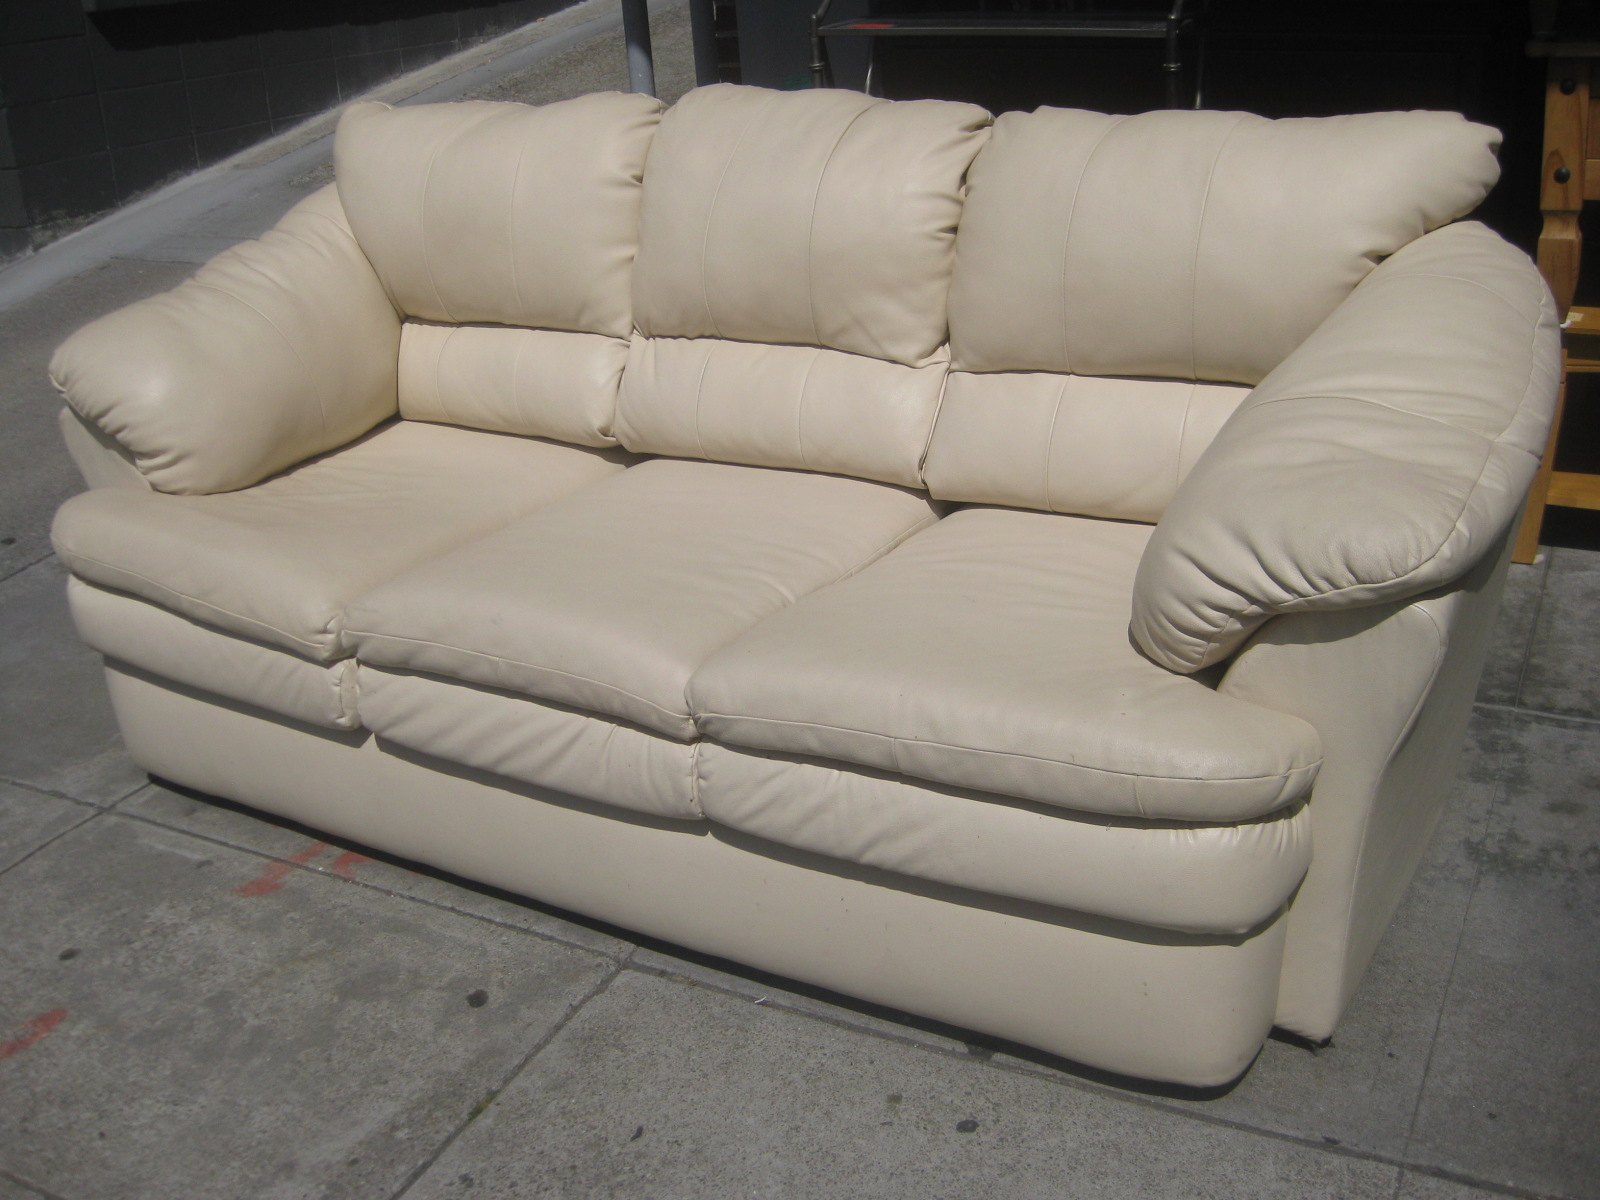 UHURU FURNITURE & COLLECTIBLES SOLD White Leather Sofa $100